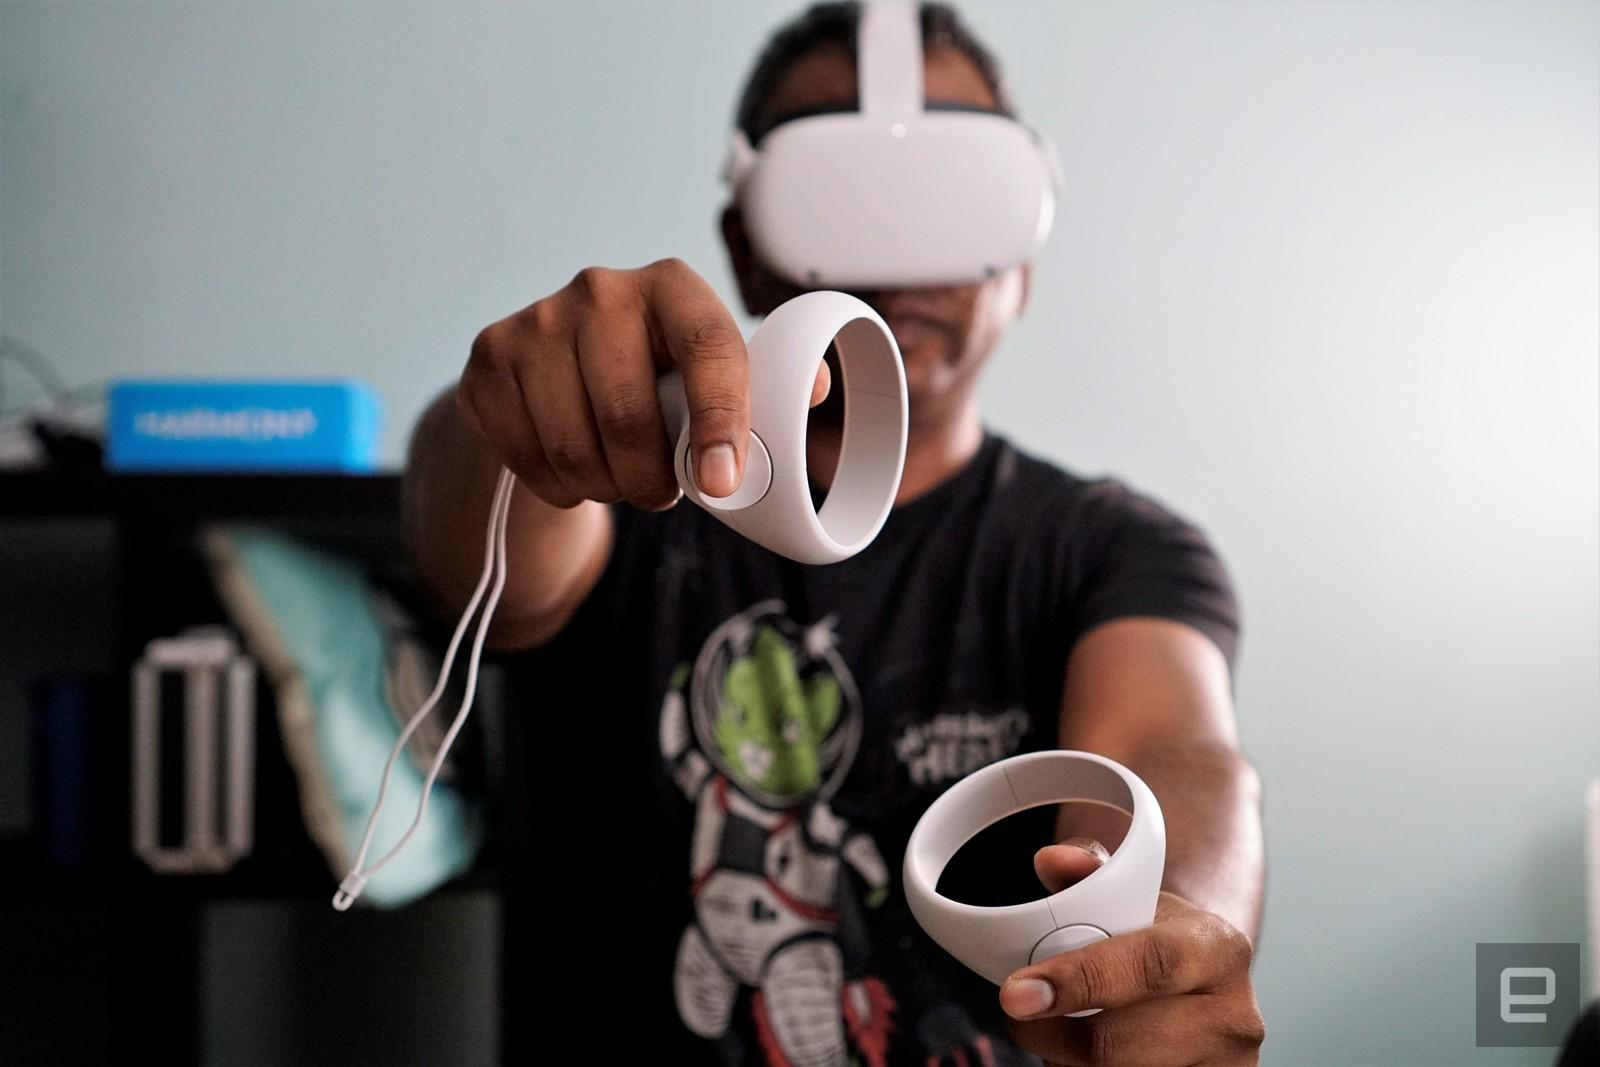 Oculus Quest 2 and Portal devices now respond to 'Hey Facebook' | Engadget